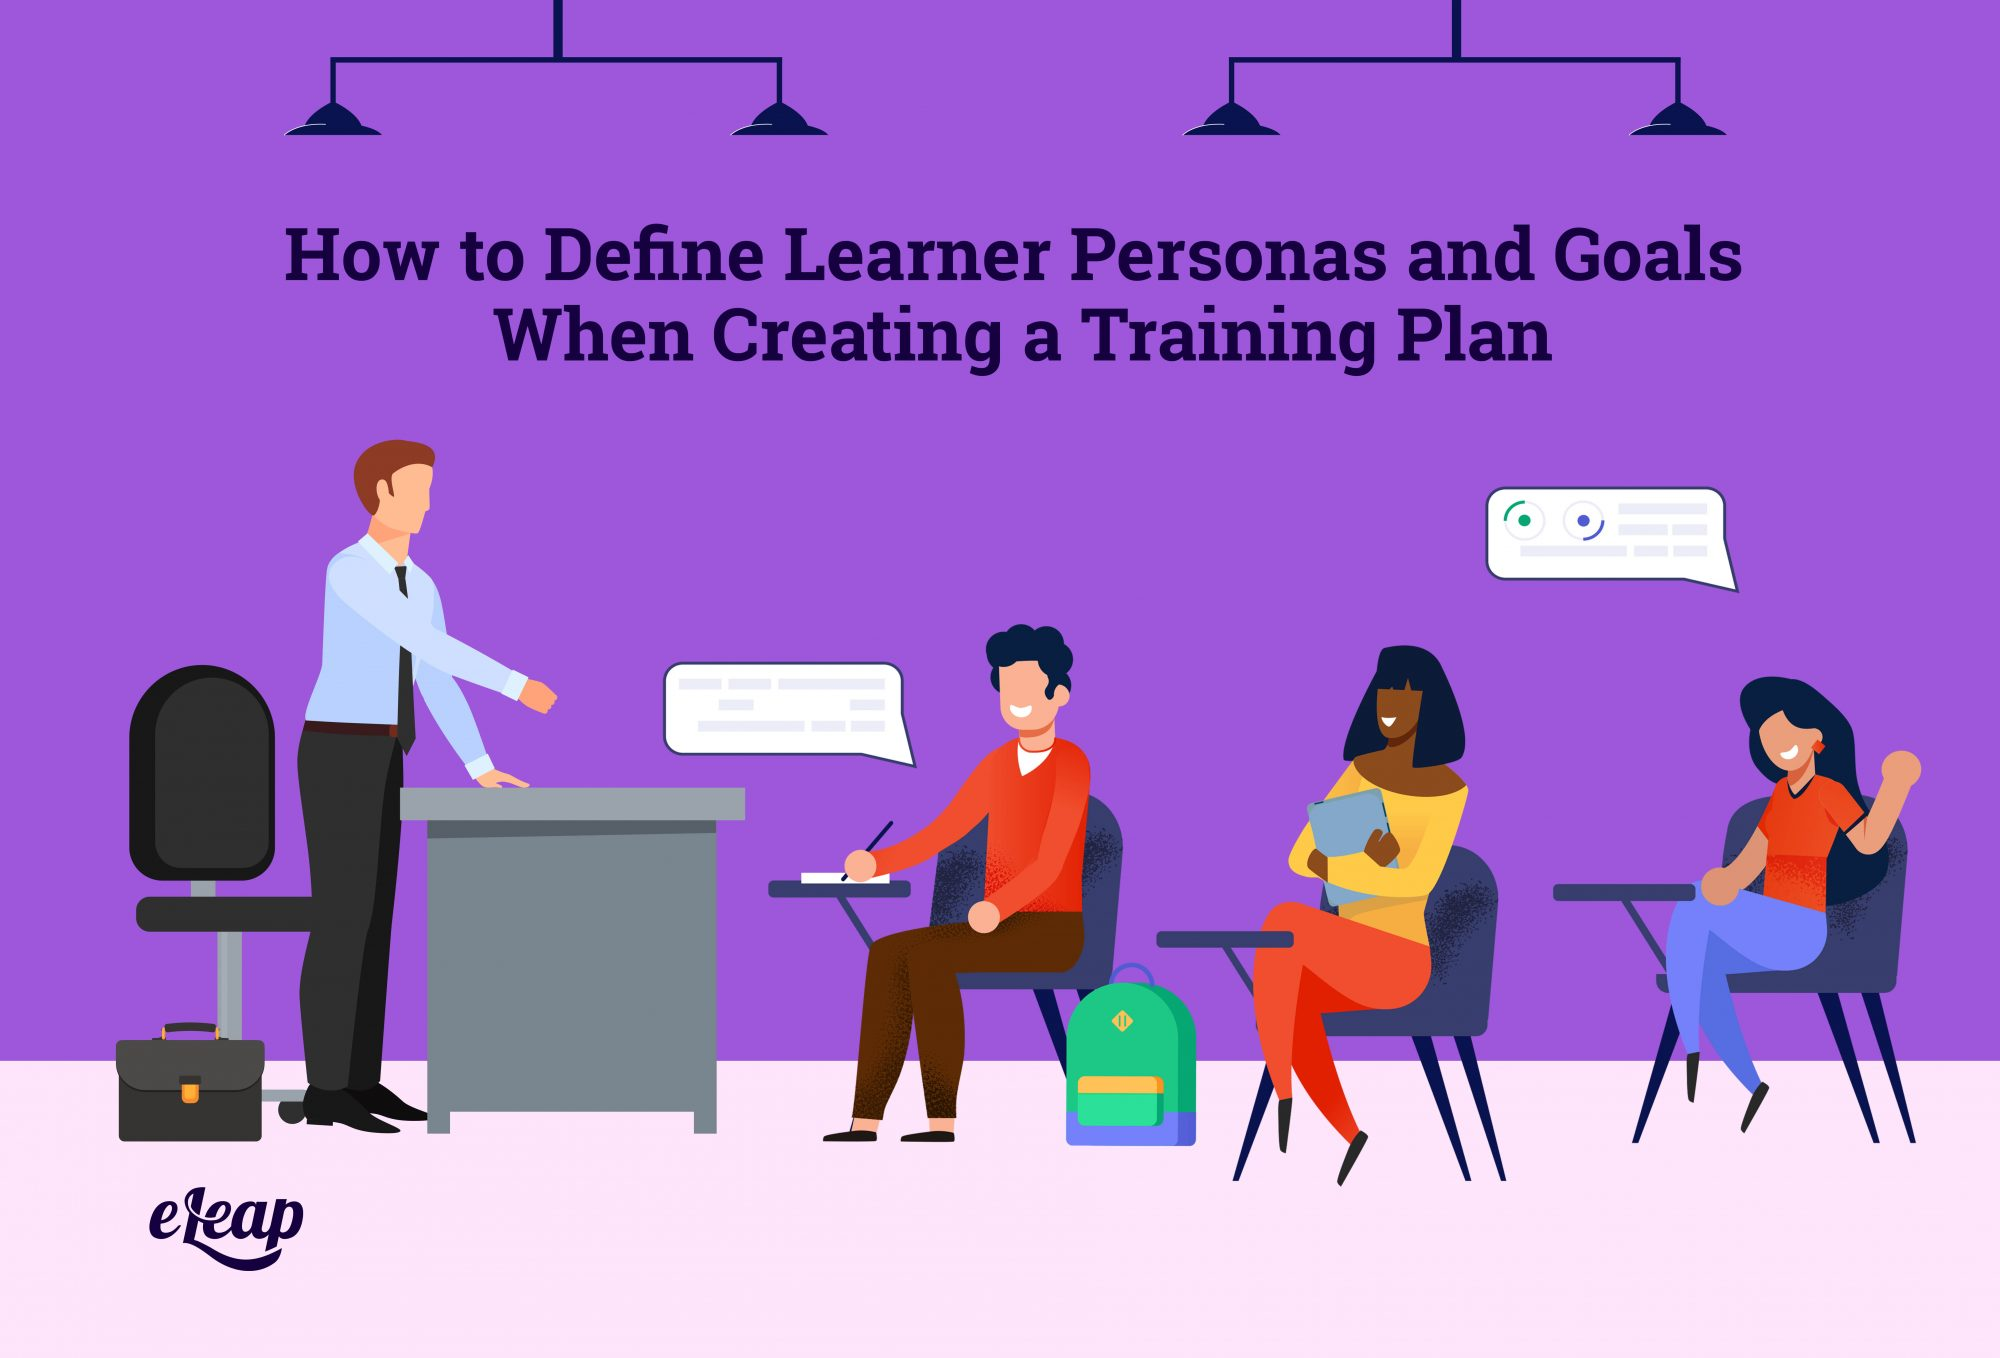 How to Define Learner Personas and Goals When Creating a Training Plan